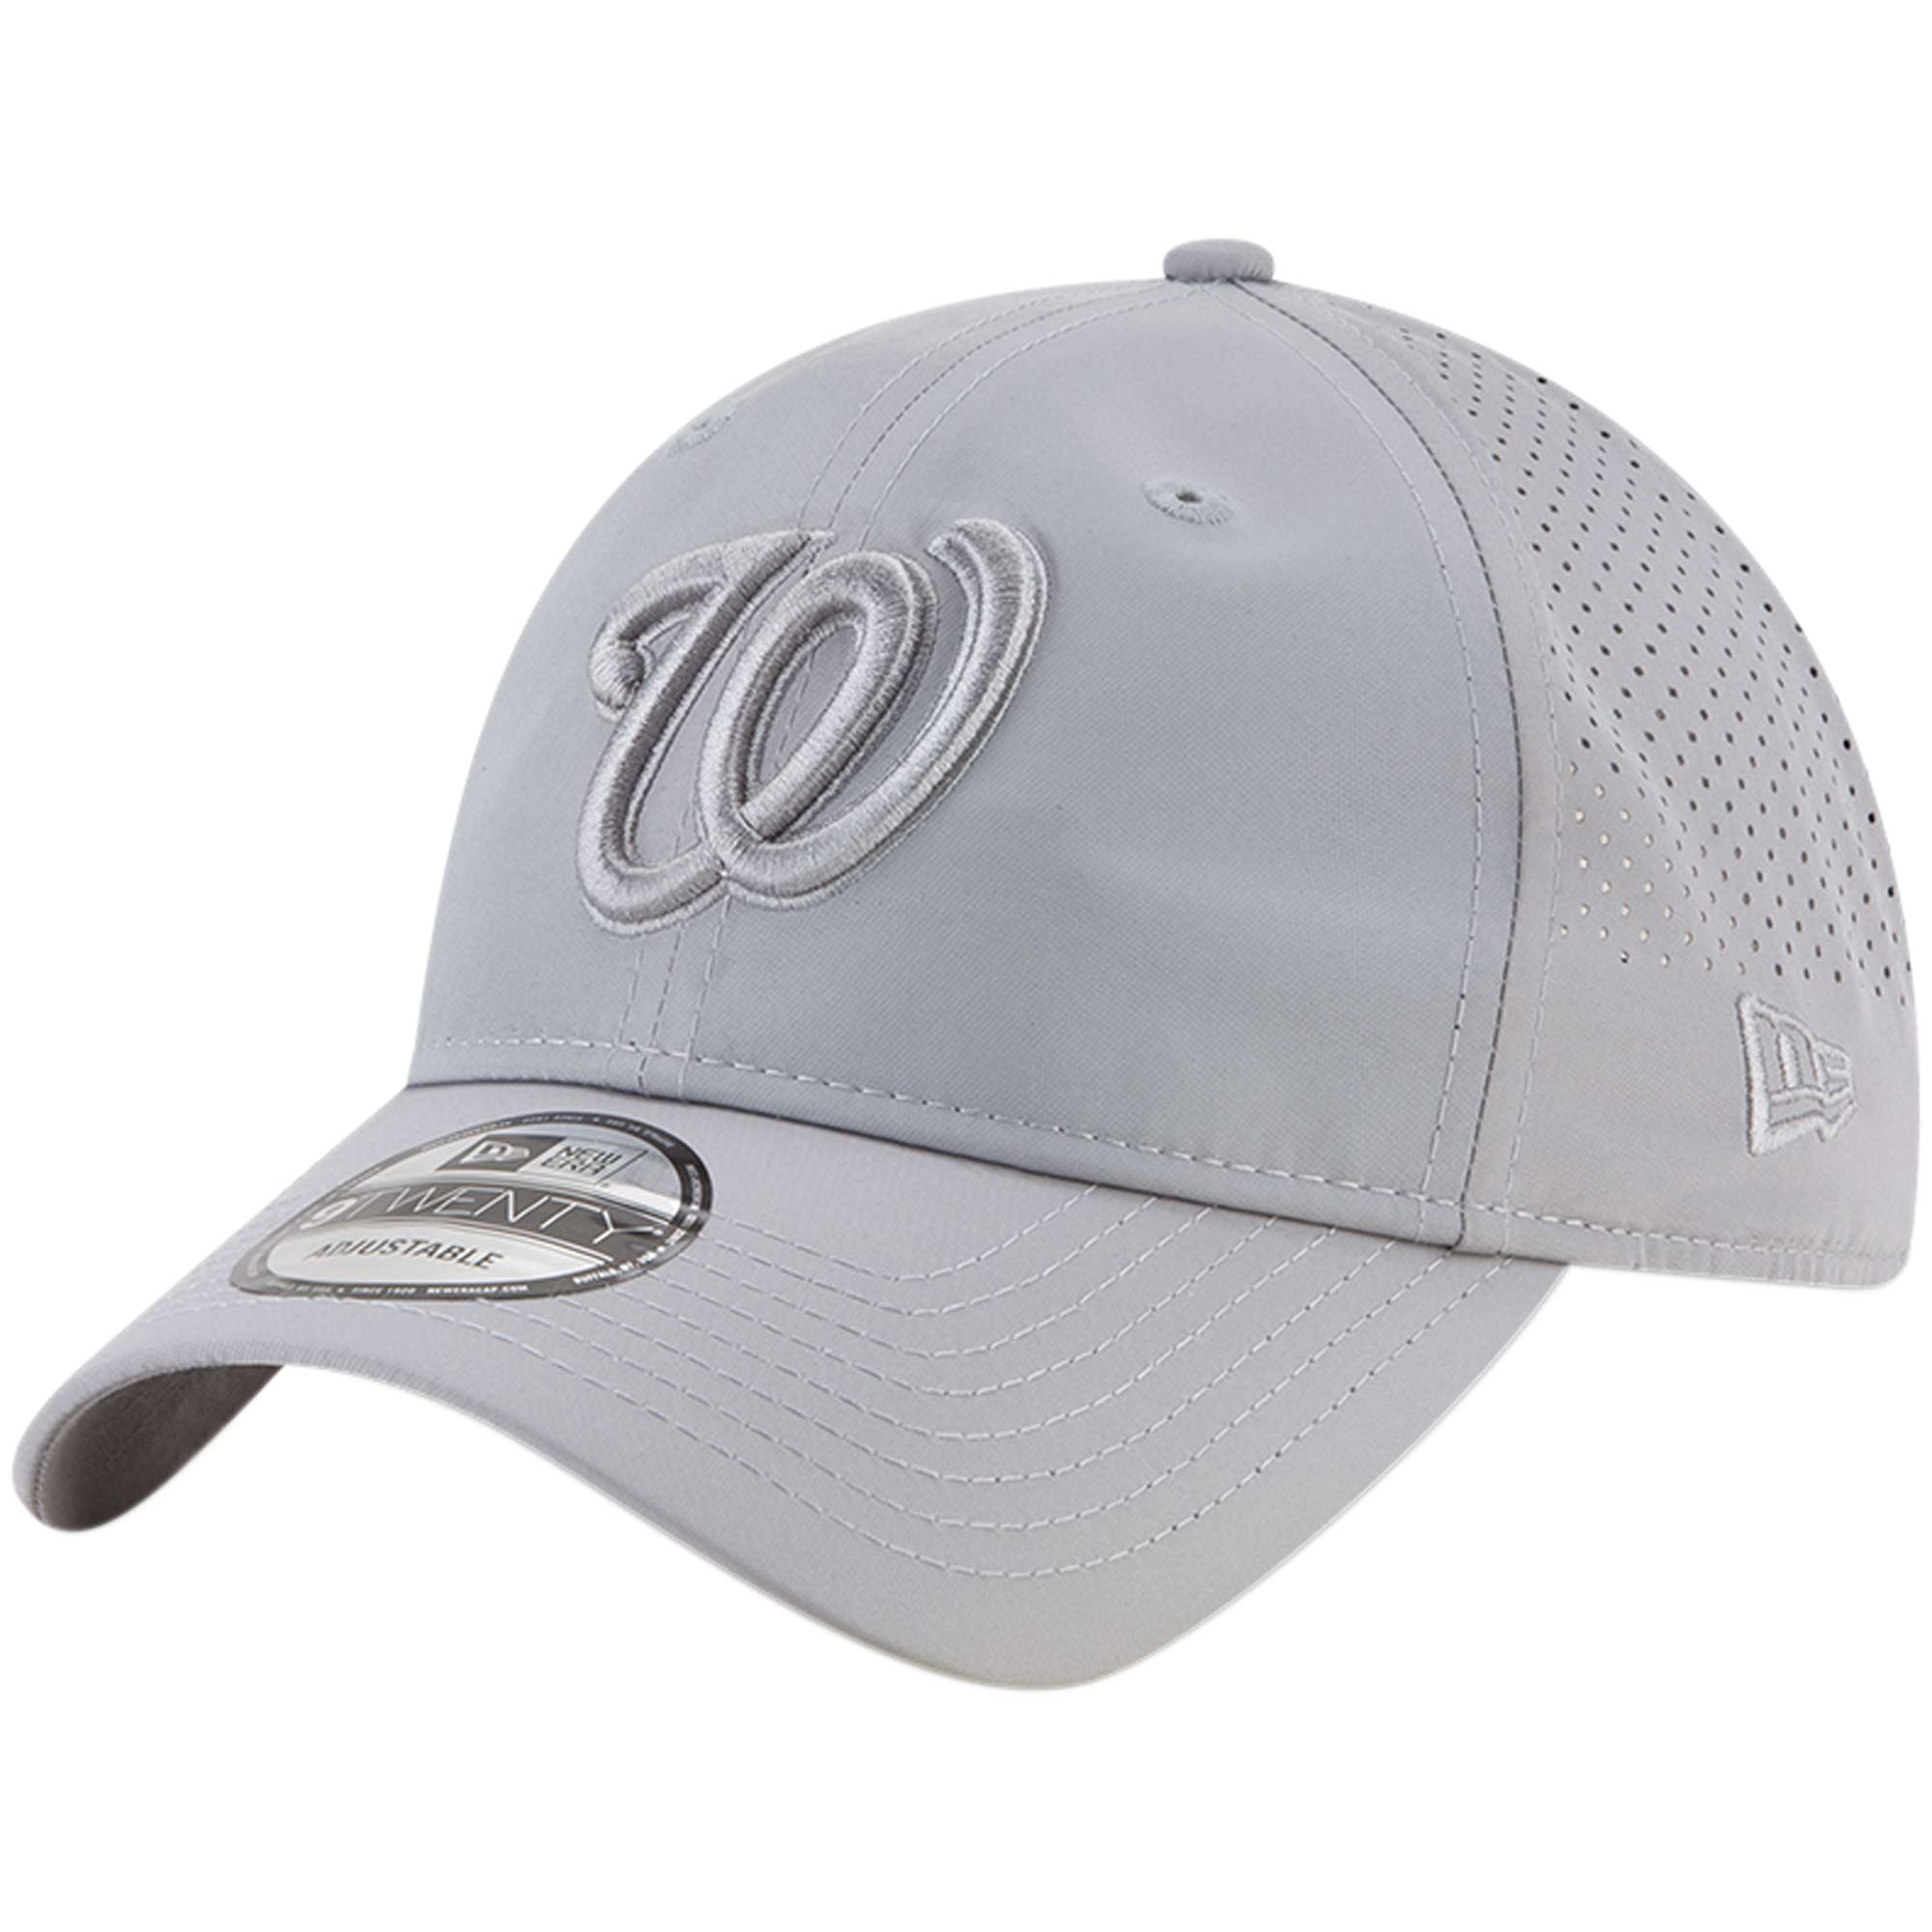 Washington Nationals New Era Perforated Tone 9TWENTY Adjustable Hat - Gray - OSFA